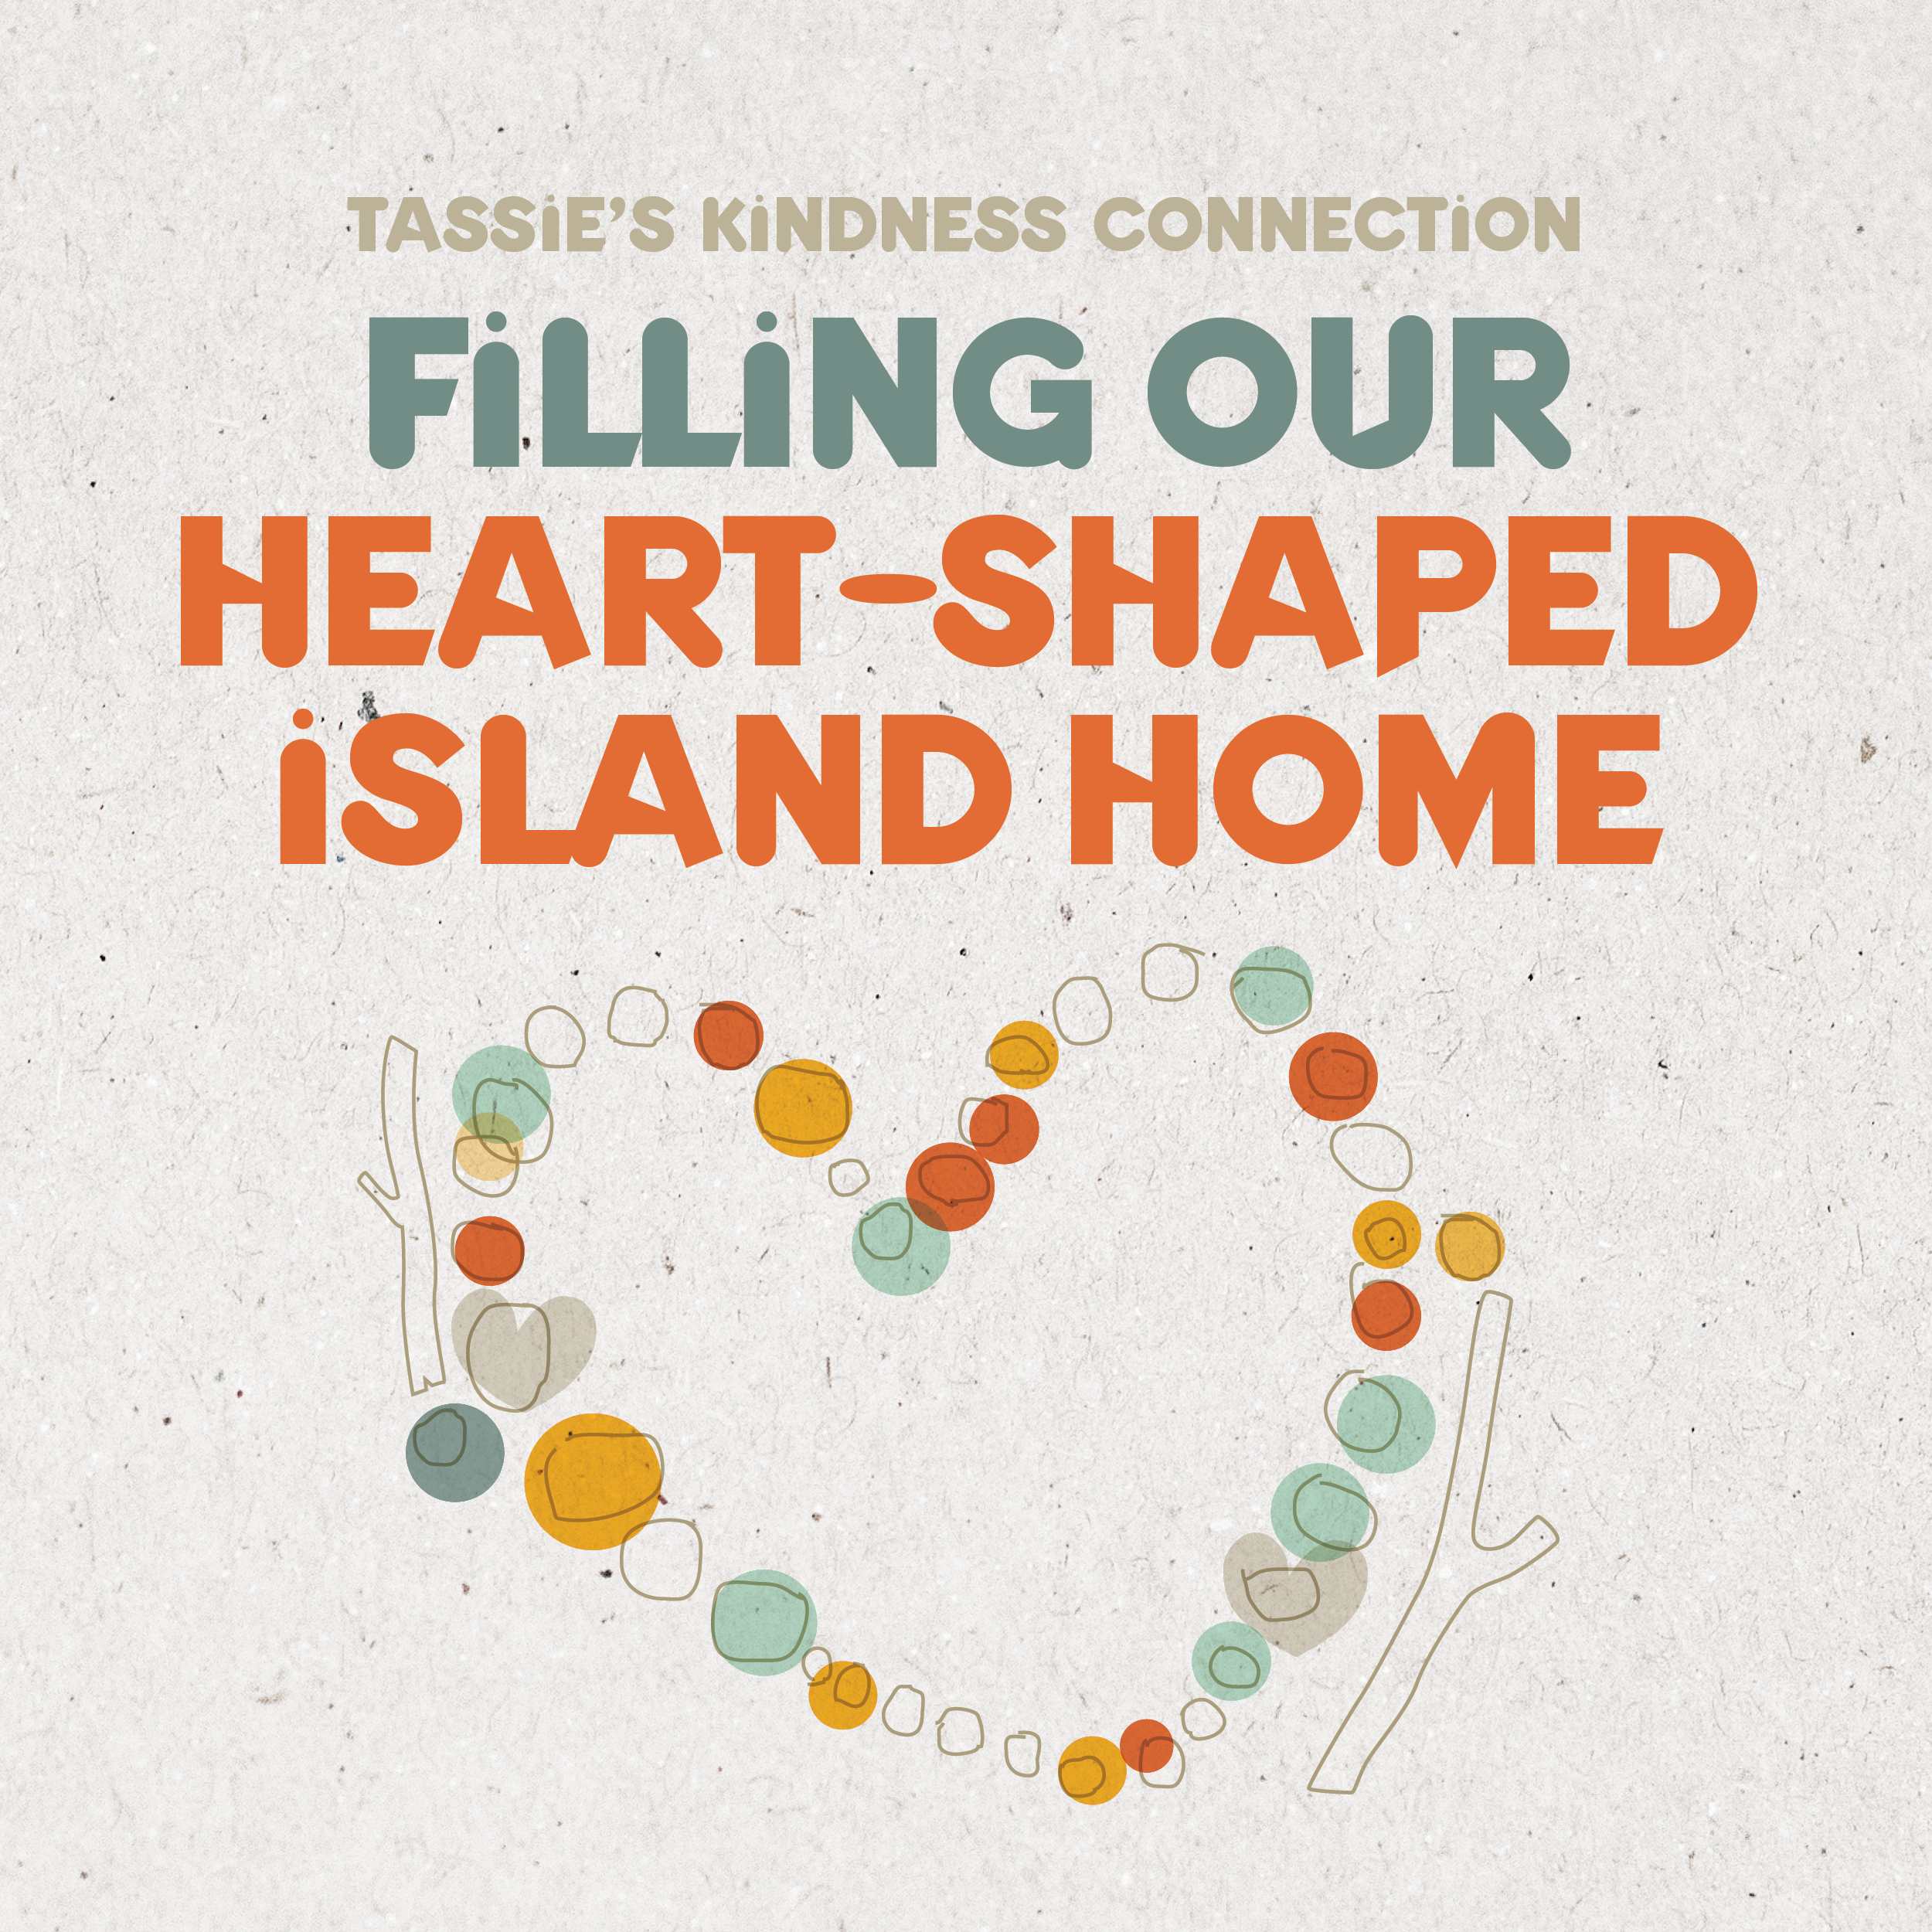 Image of a heart made of pebbles as an illustration of Tassie's Kindness Connection's Filling Our Heart Shaped Island Home activity